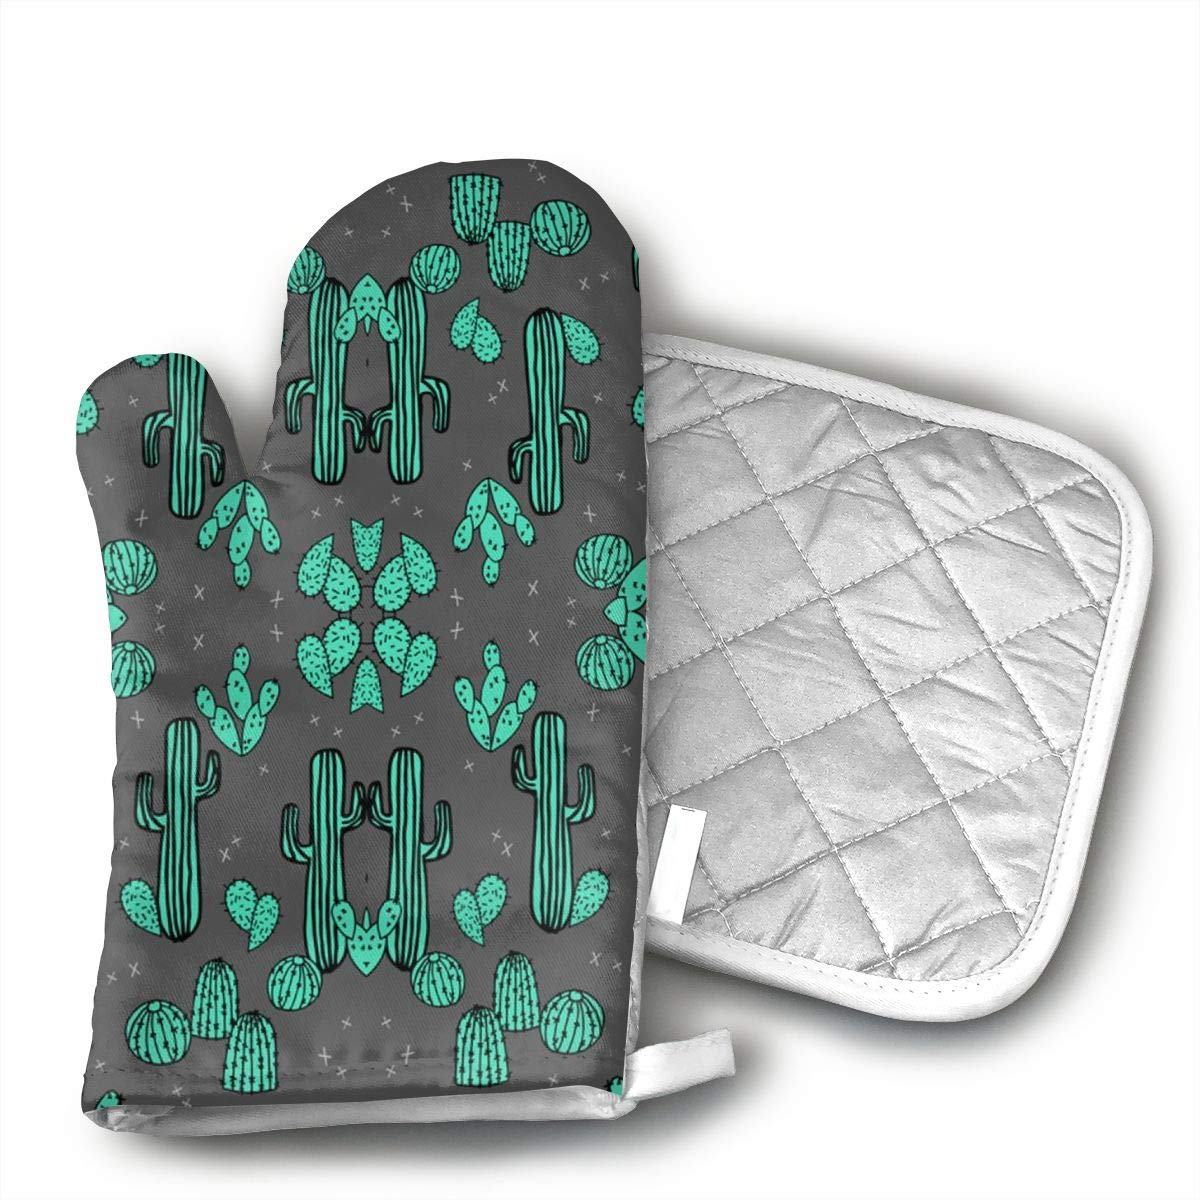 HGUIDHG Cactus Southwest Desert Oven Mitts+Insulated Square Mat,Heat Resistant Kitchen Gloves Soft Insulated Deep Pockets, Non-Slip Handles